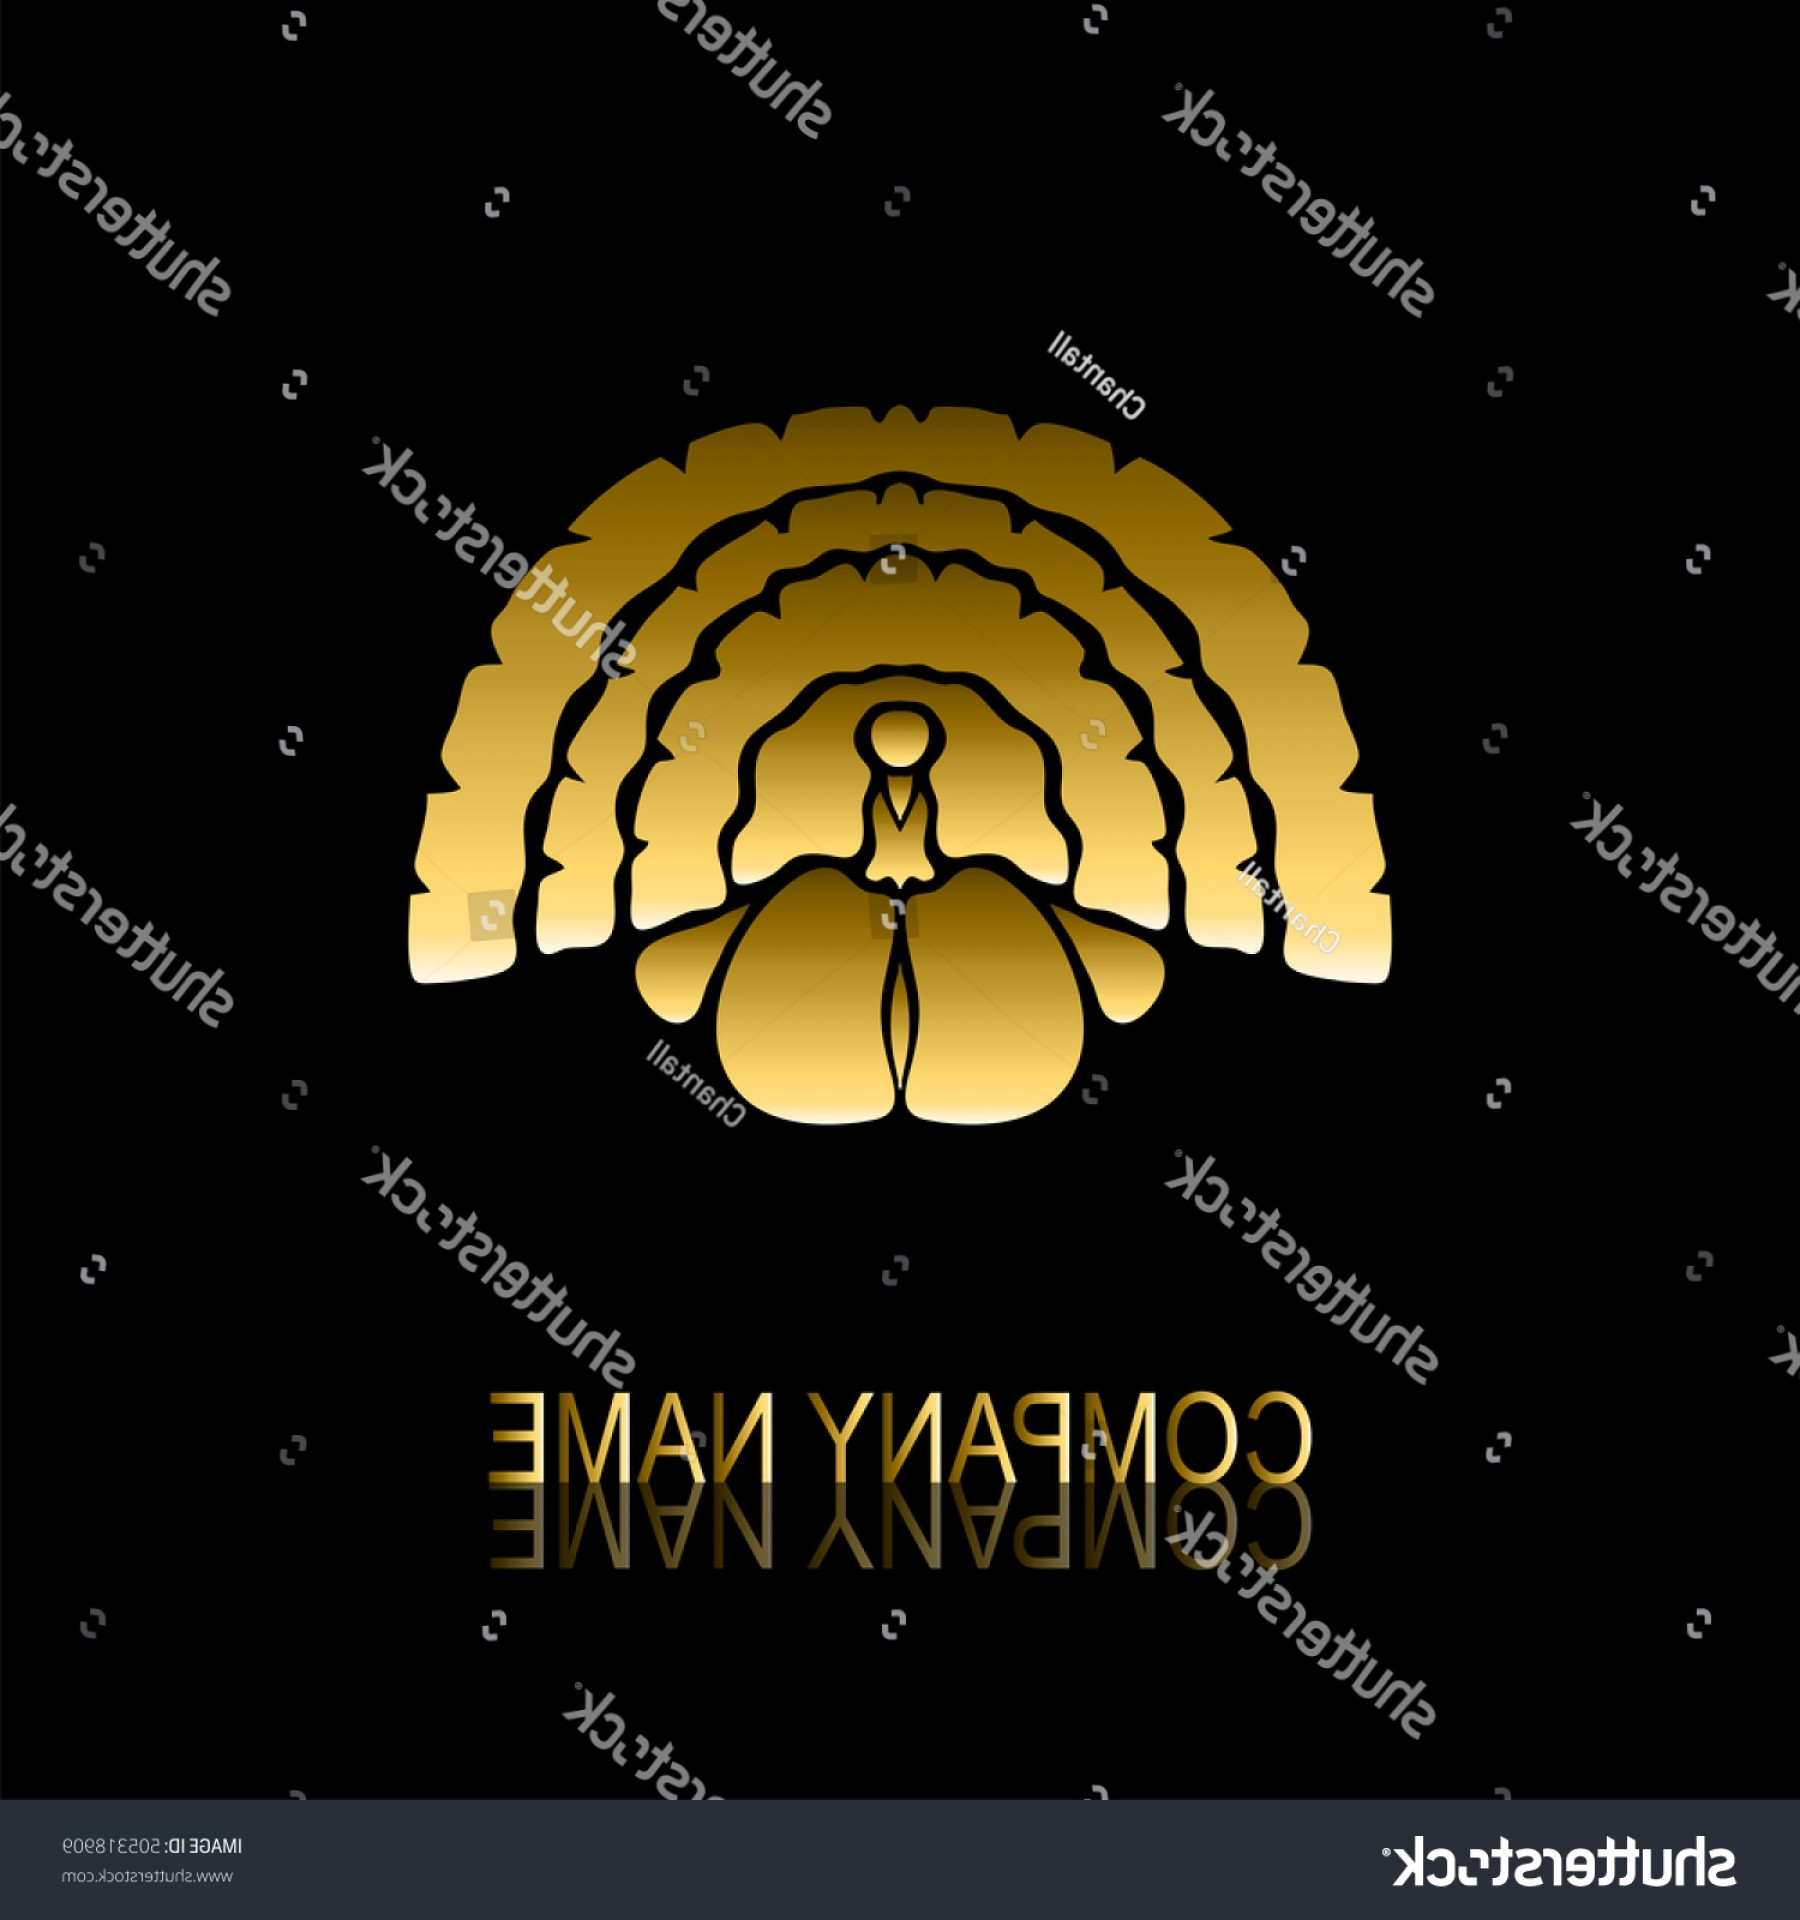 Jewelry Manufacturing Icon Vector: Abstract Golden Turkey Signsymbol Design Element